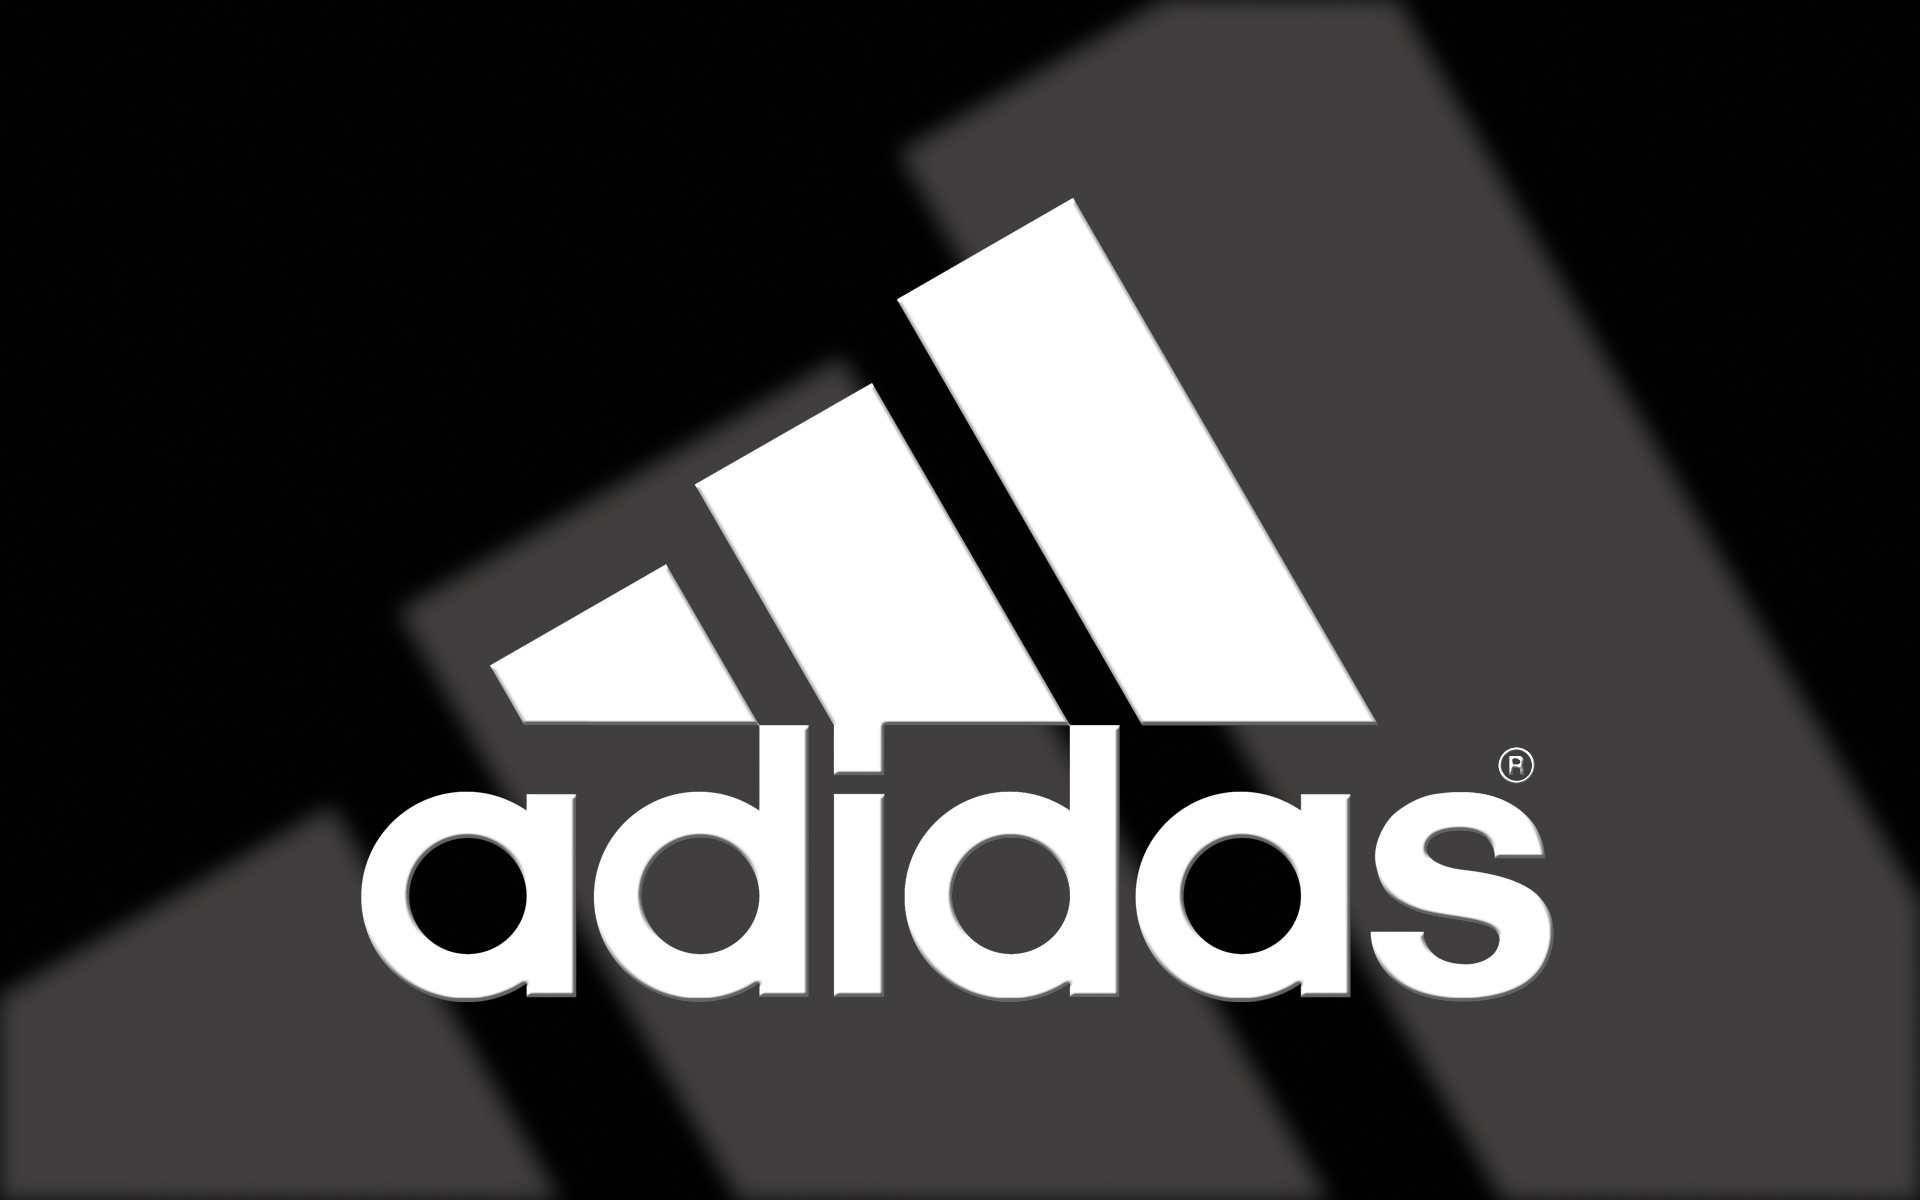 Wallpapers Adidas Wallpaper Cave